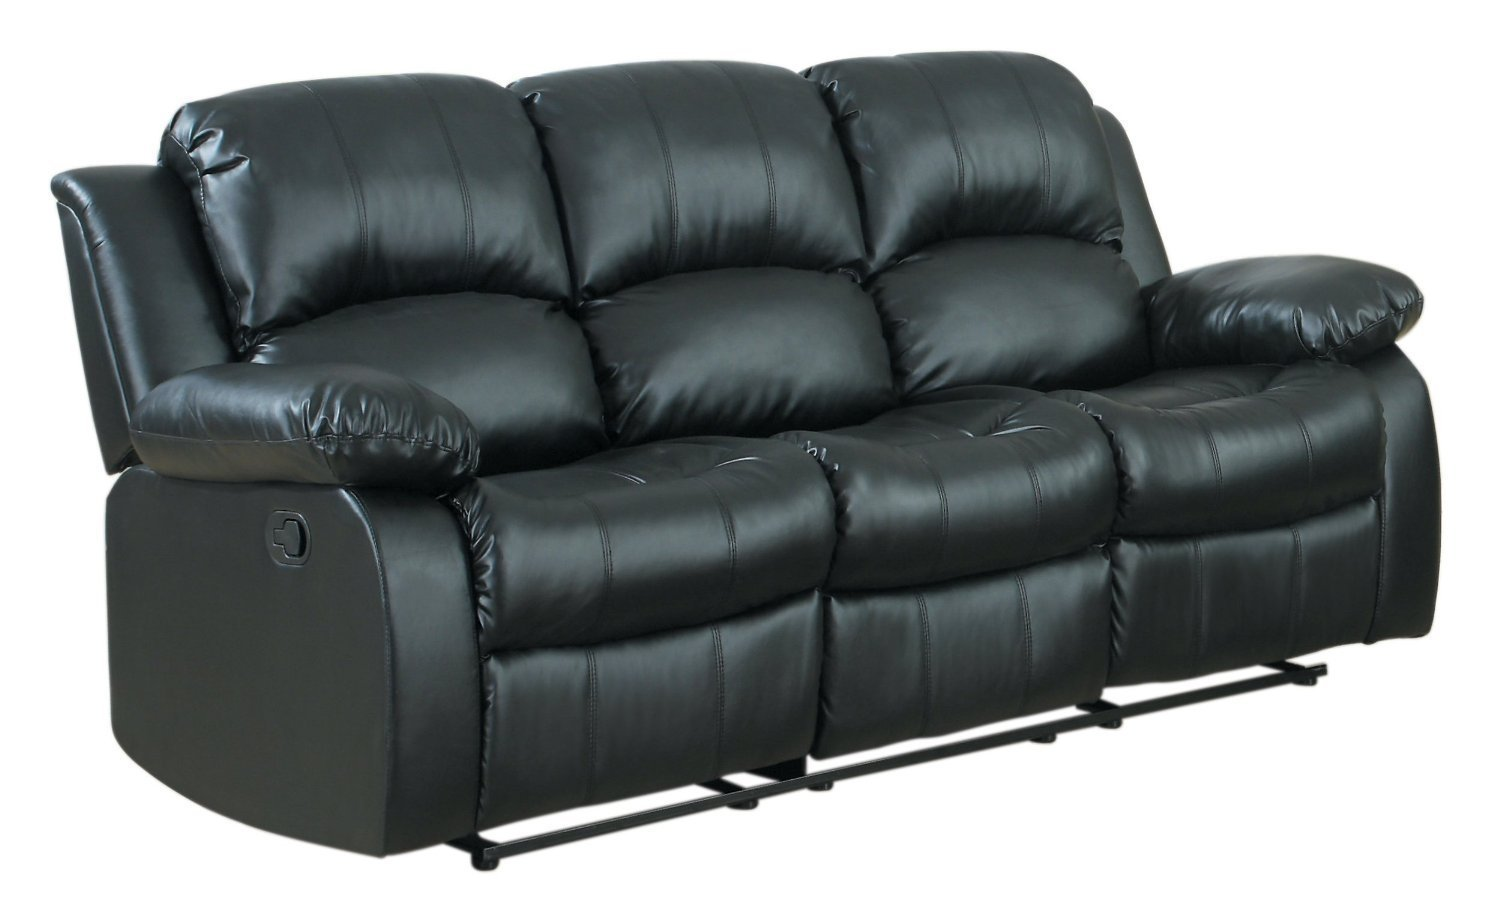 Details About Classic Modern Couch In Bonded Leather Fabric 3 Seater Recliner Sofa Black